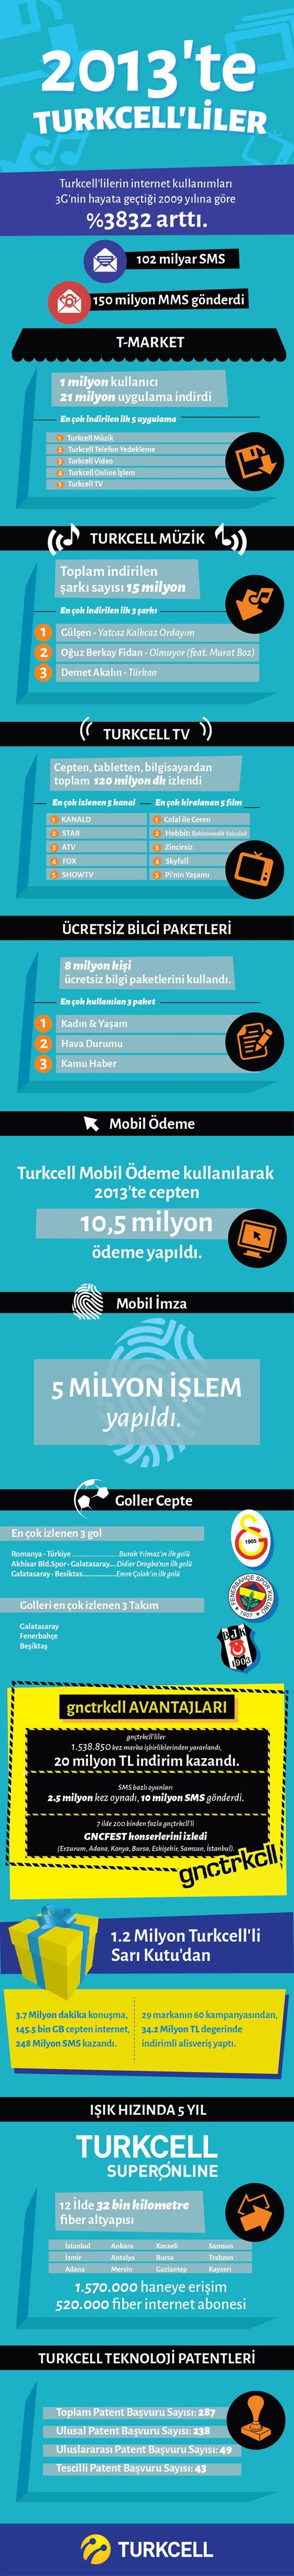 Turkcell_infographic_cs5